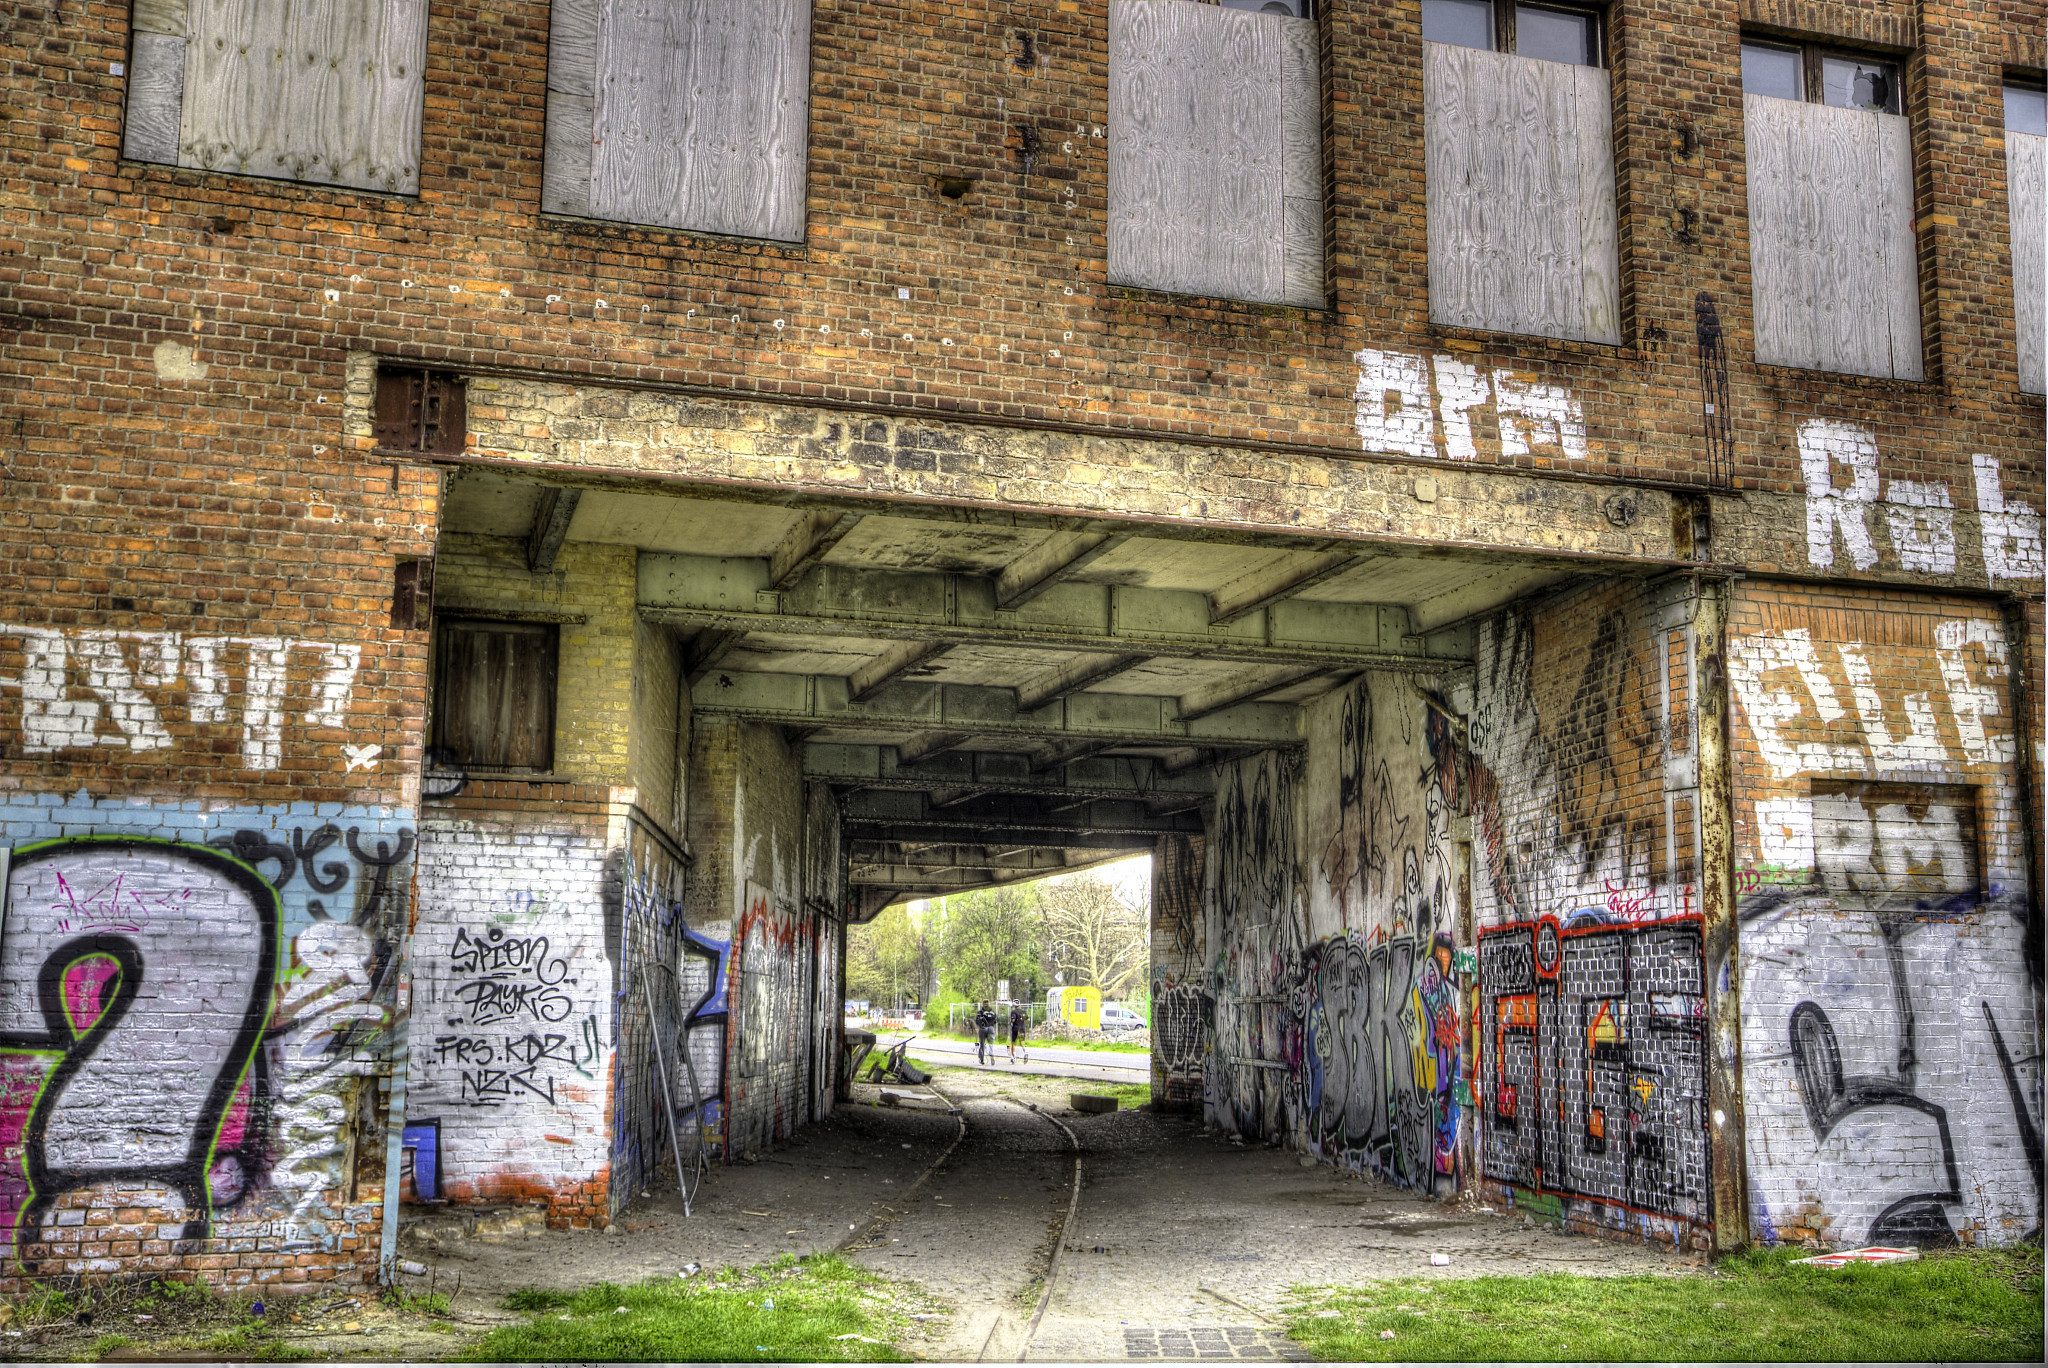 HDR shot of inside and out of building.